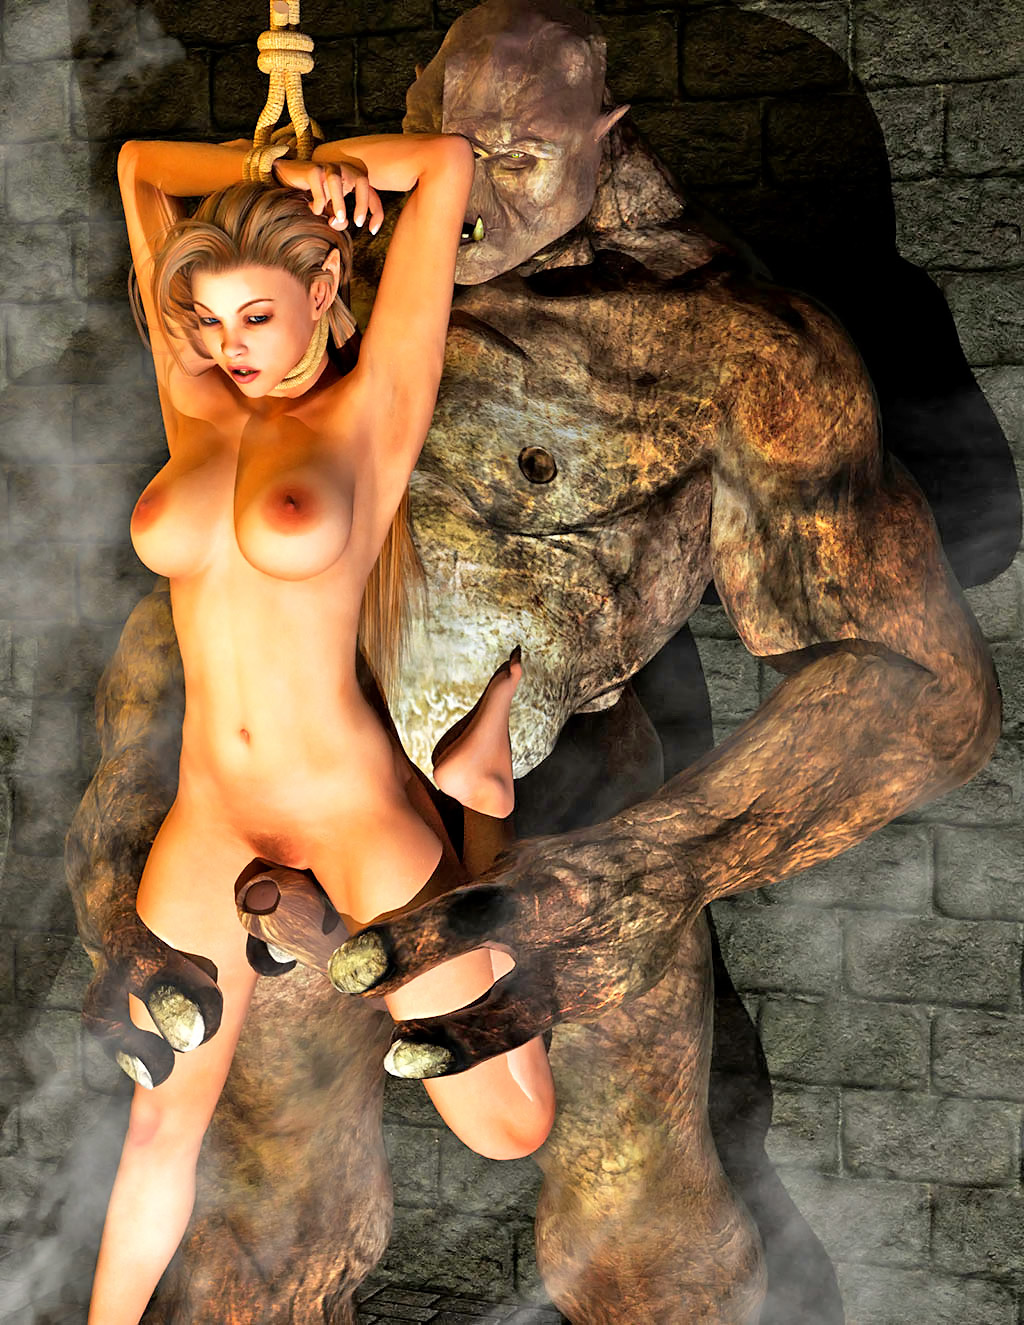 Girls getting fucked by monsters sex image